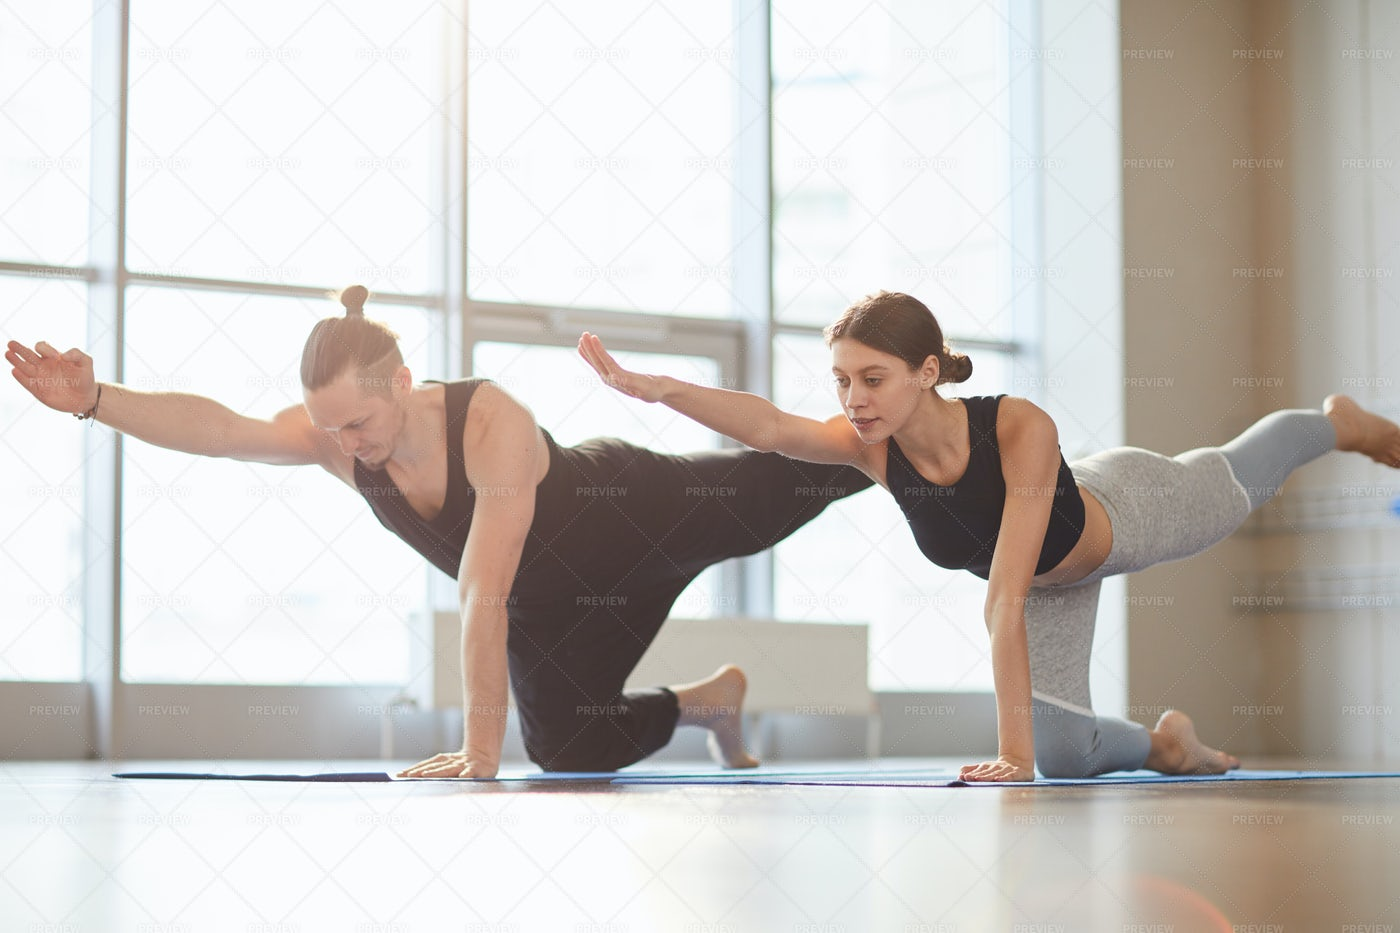 Lengthening Spine With Table Pose: Stock Photos